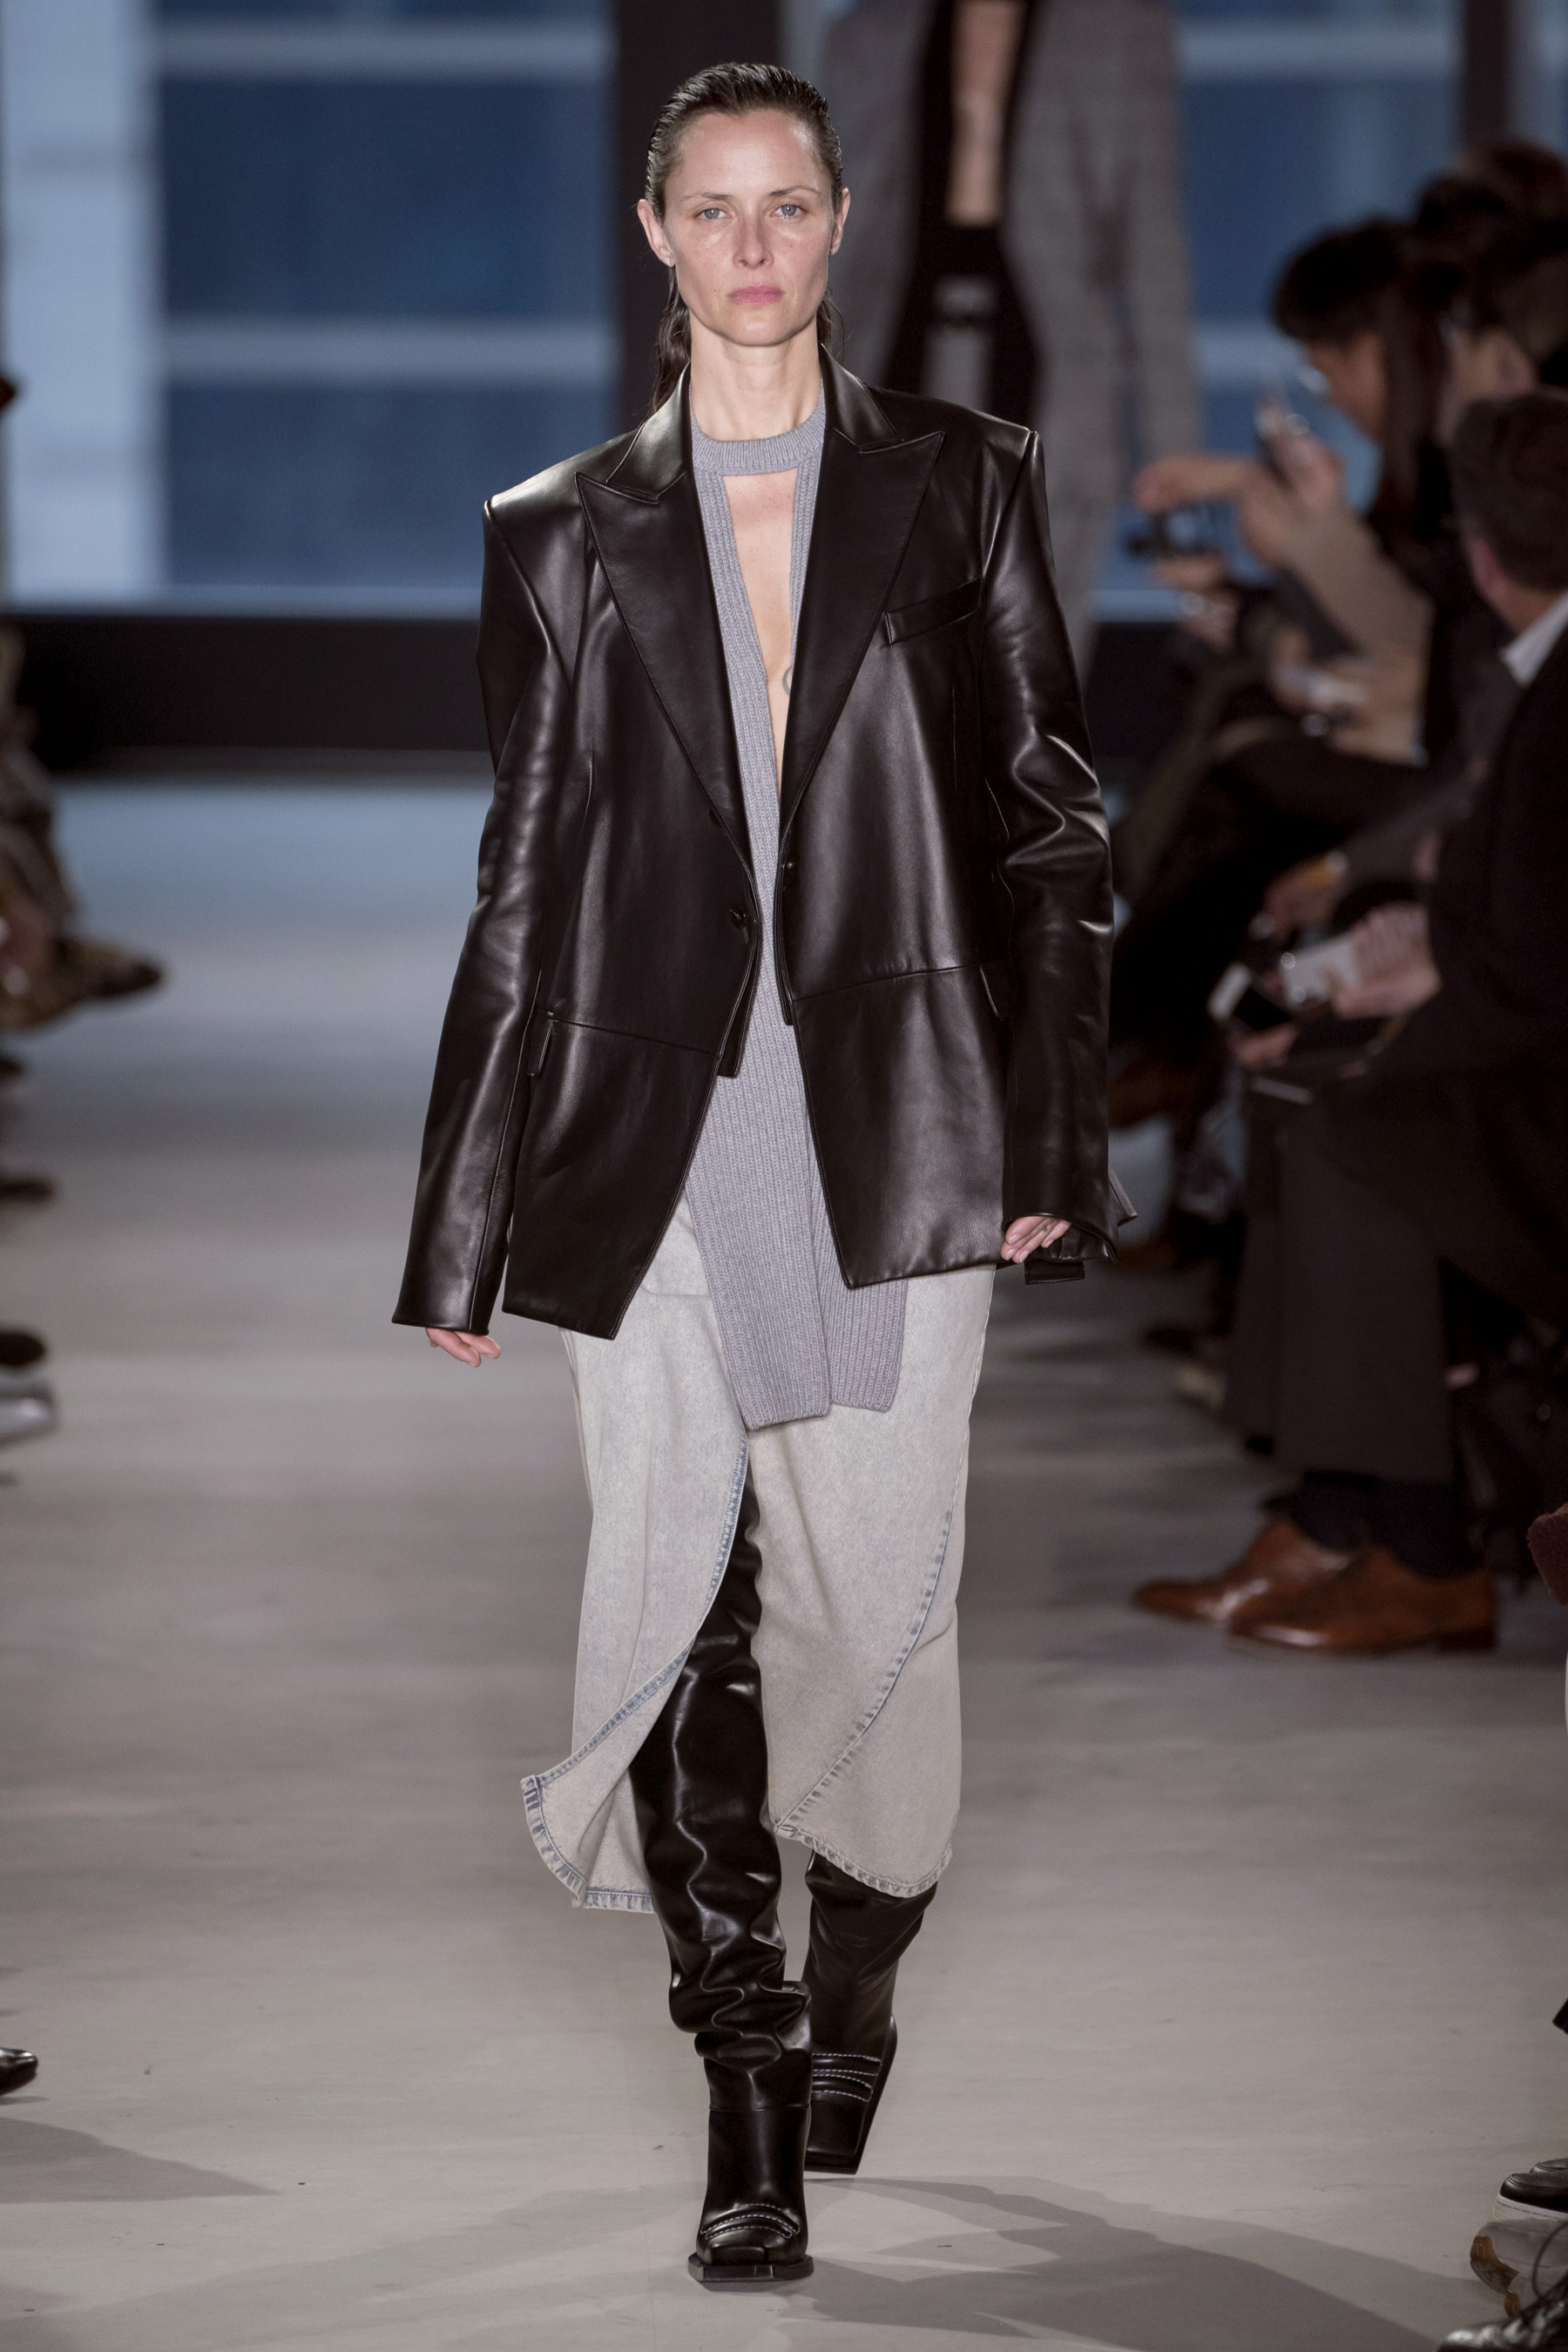 Fashion Designers Embrace Age Diversity On Runway for Fall 2019